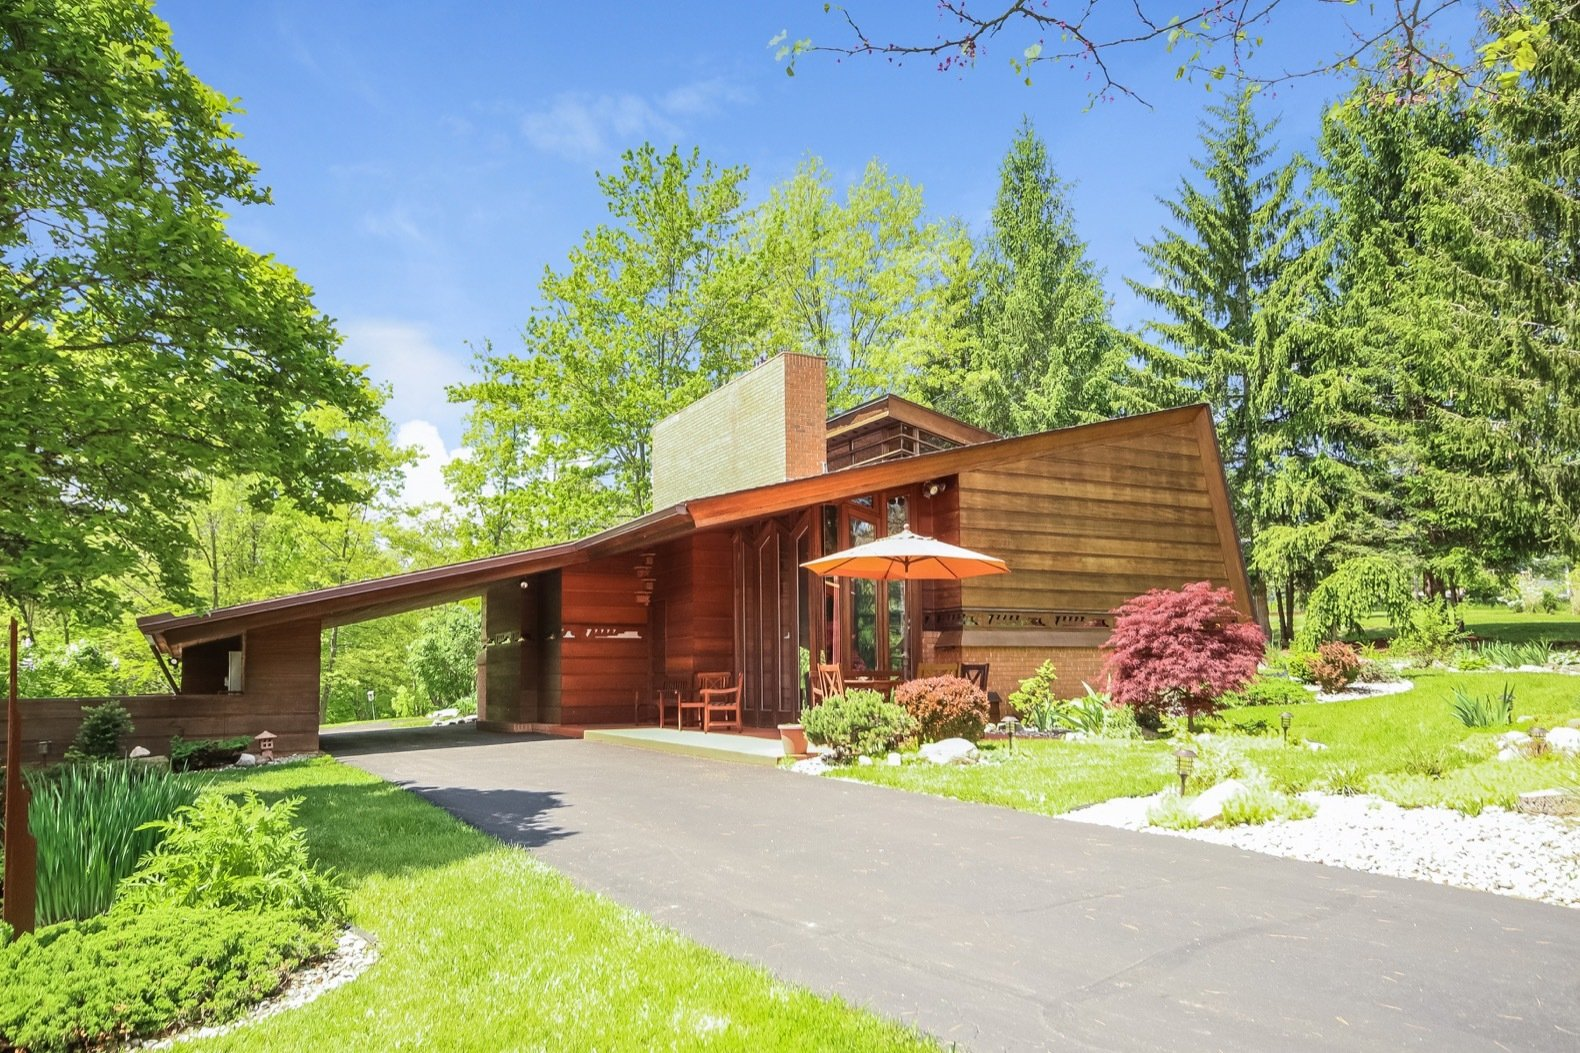 A Gorgeous Frank Lloyd Wright Home Hits The Market For The First Time At 12M Dwell